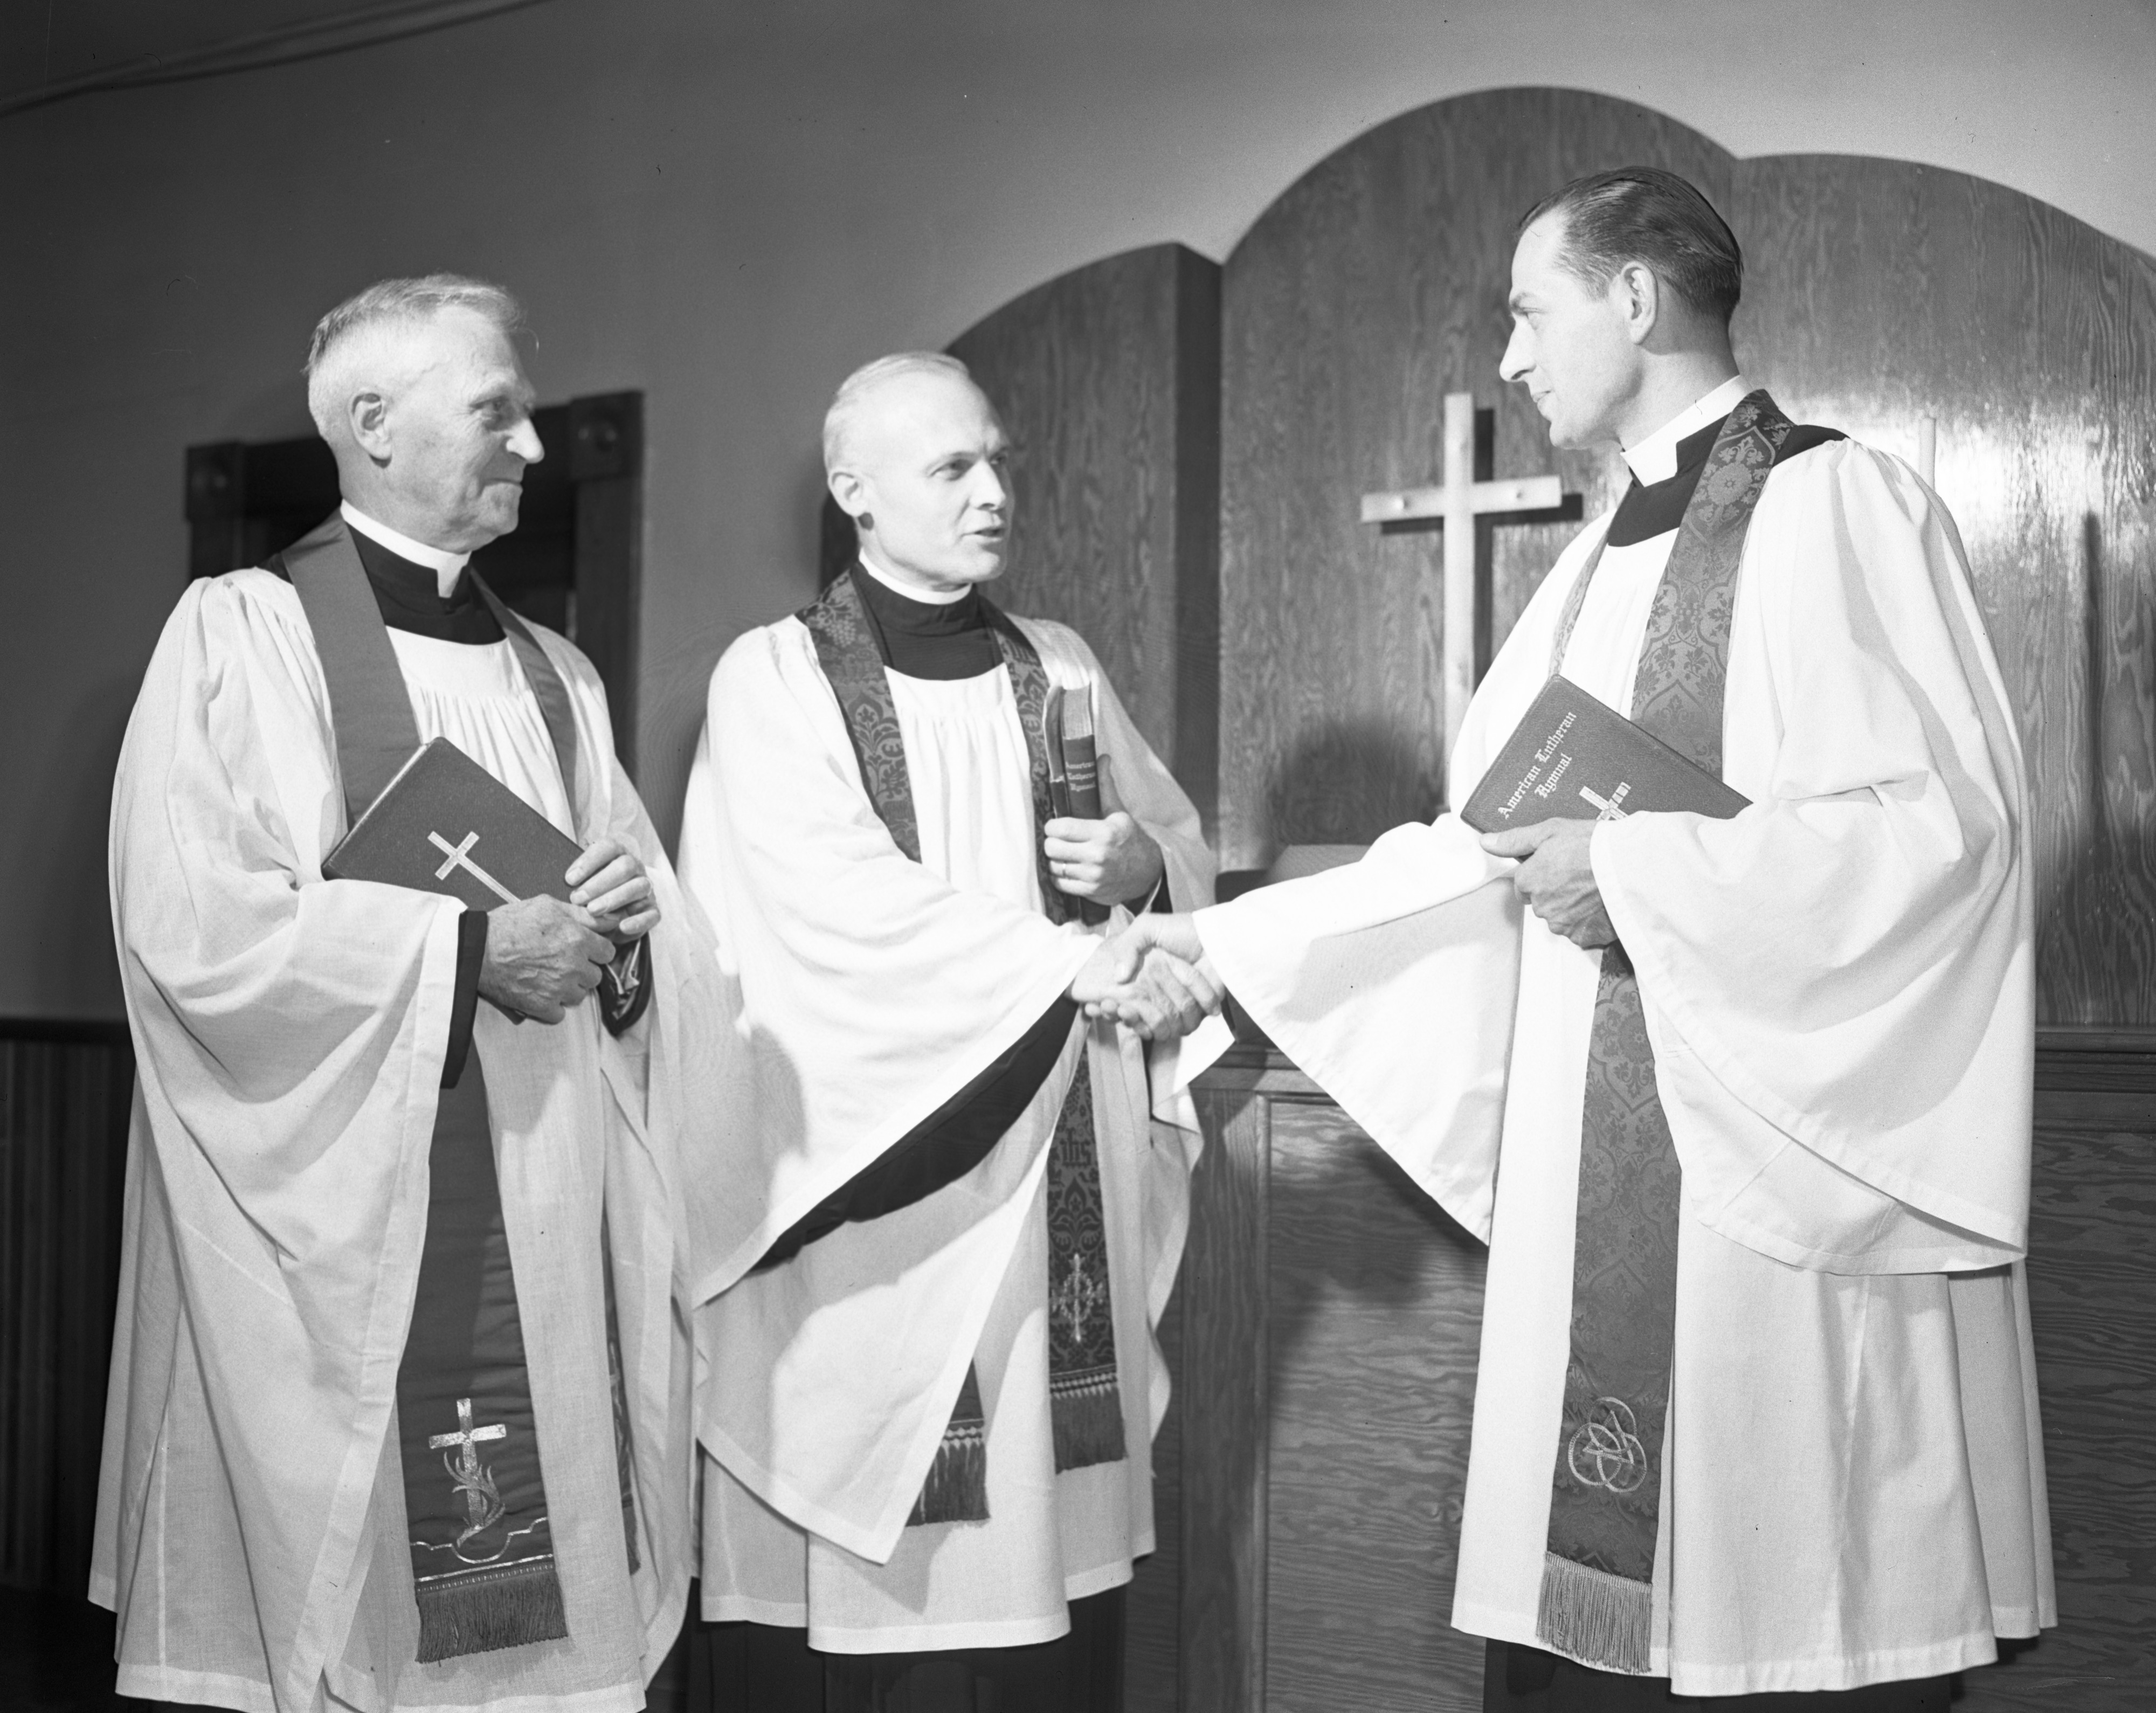 Rev. Howard F. Yeager Installed, Zion Evangelical Lutheran Church, October 1947 image